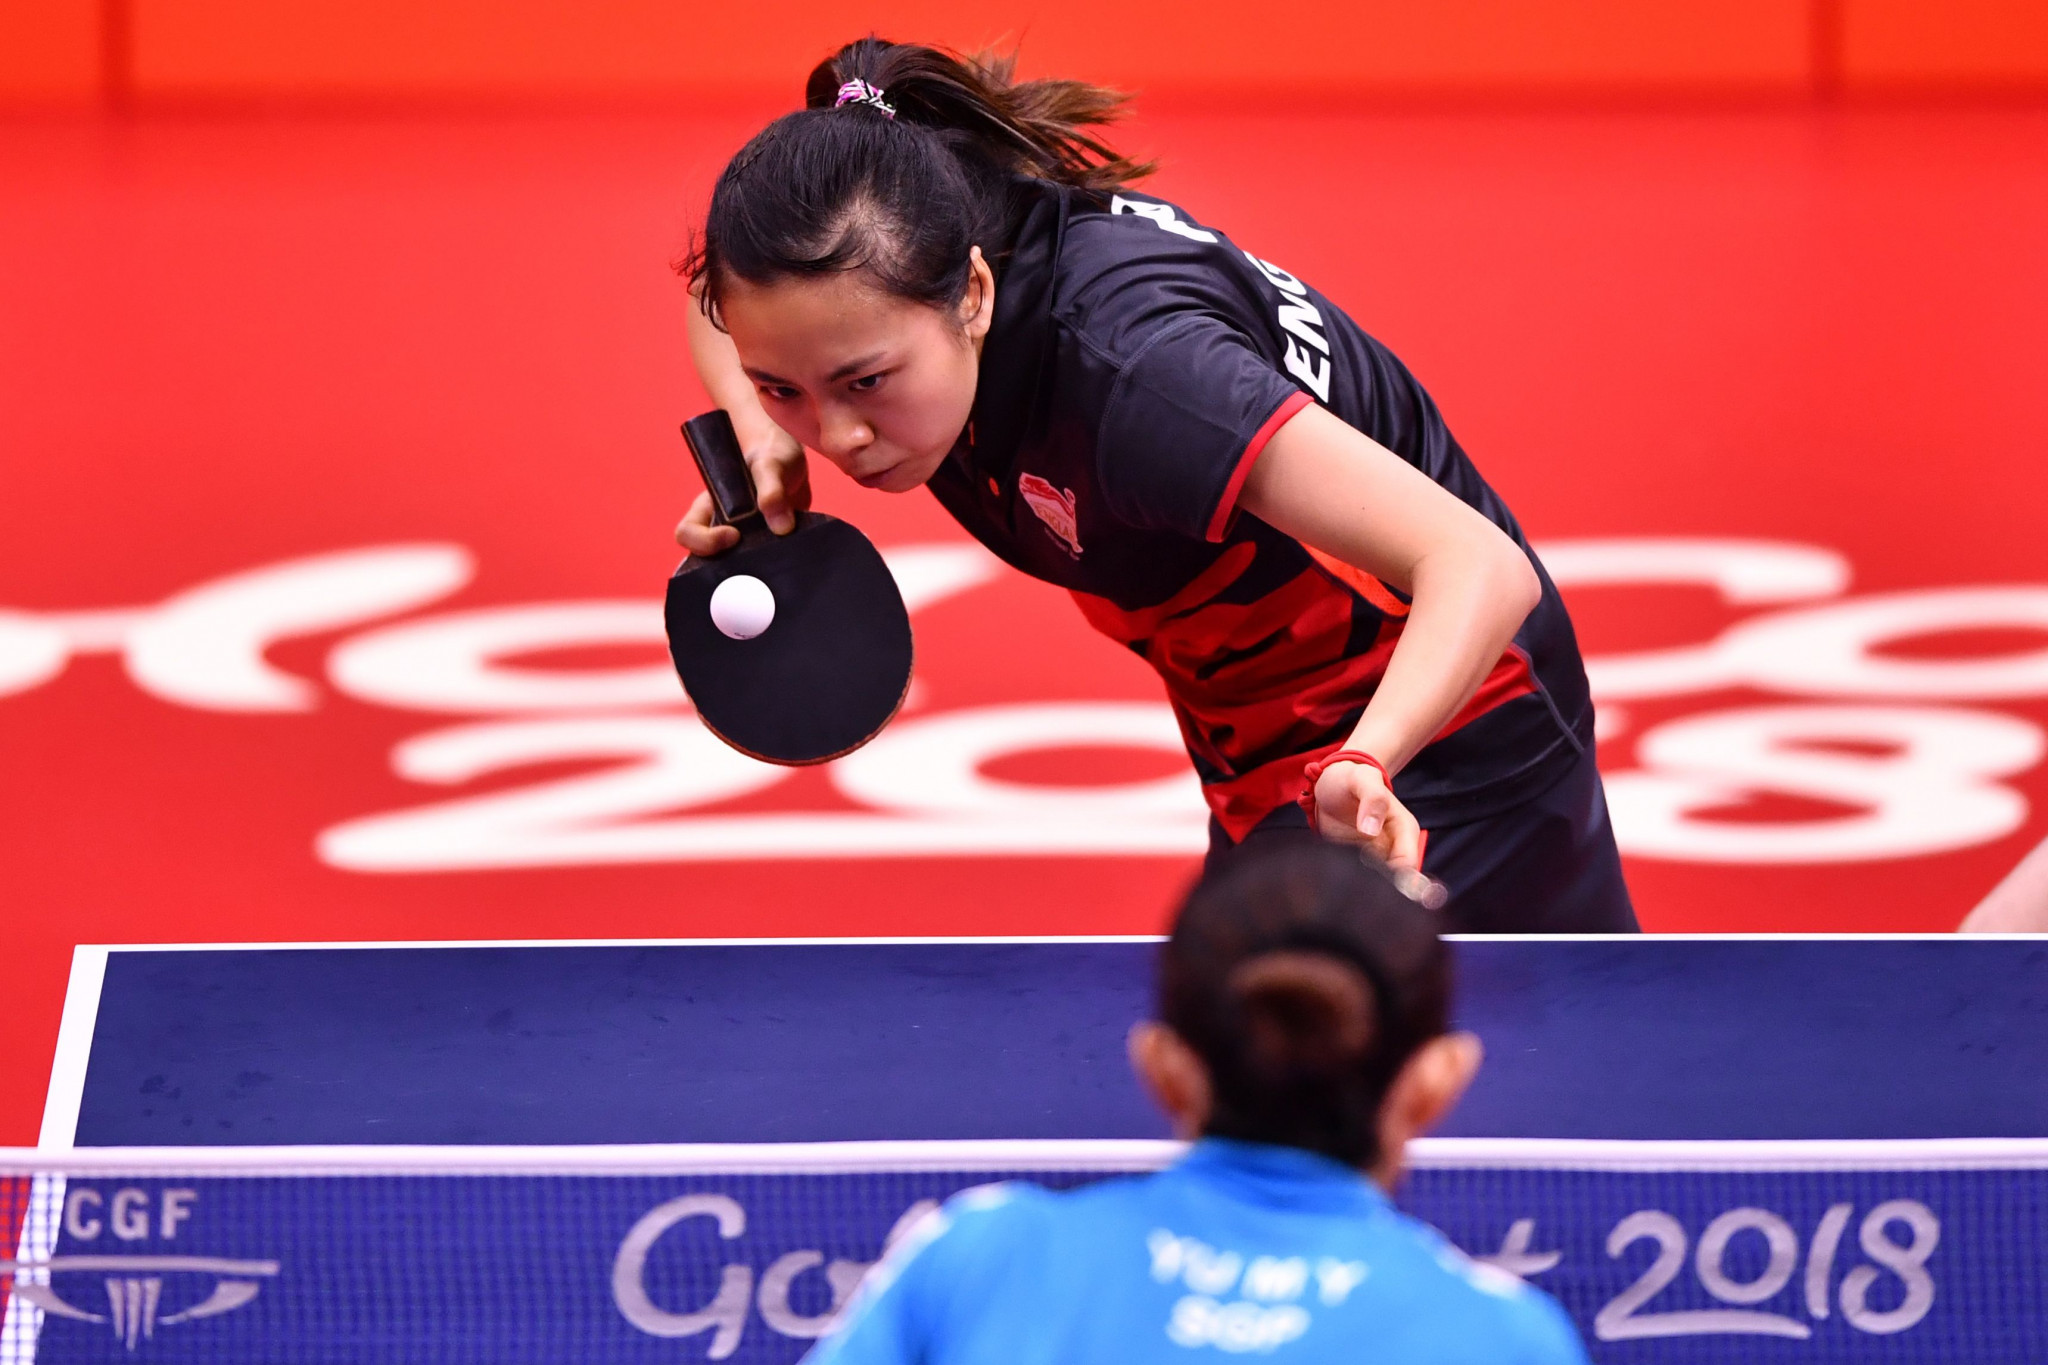 Three-times Commonwealth Games medallist Ho Tin-Tin of England reached the semi-finals of the women's singles event ©Getty Images